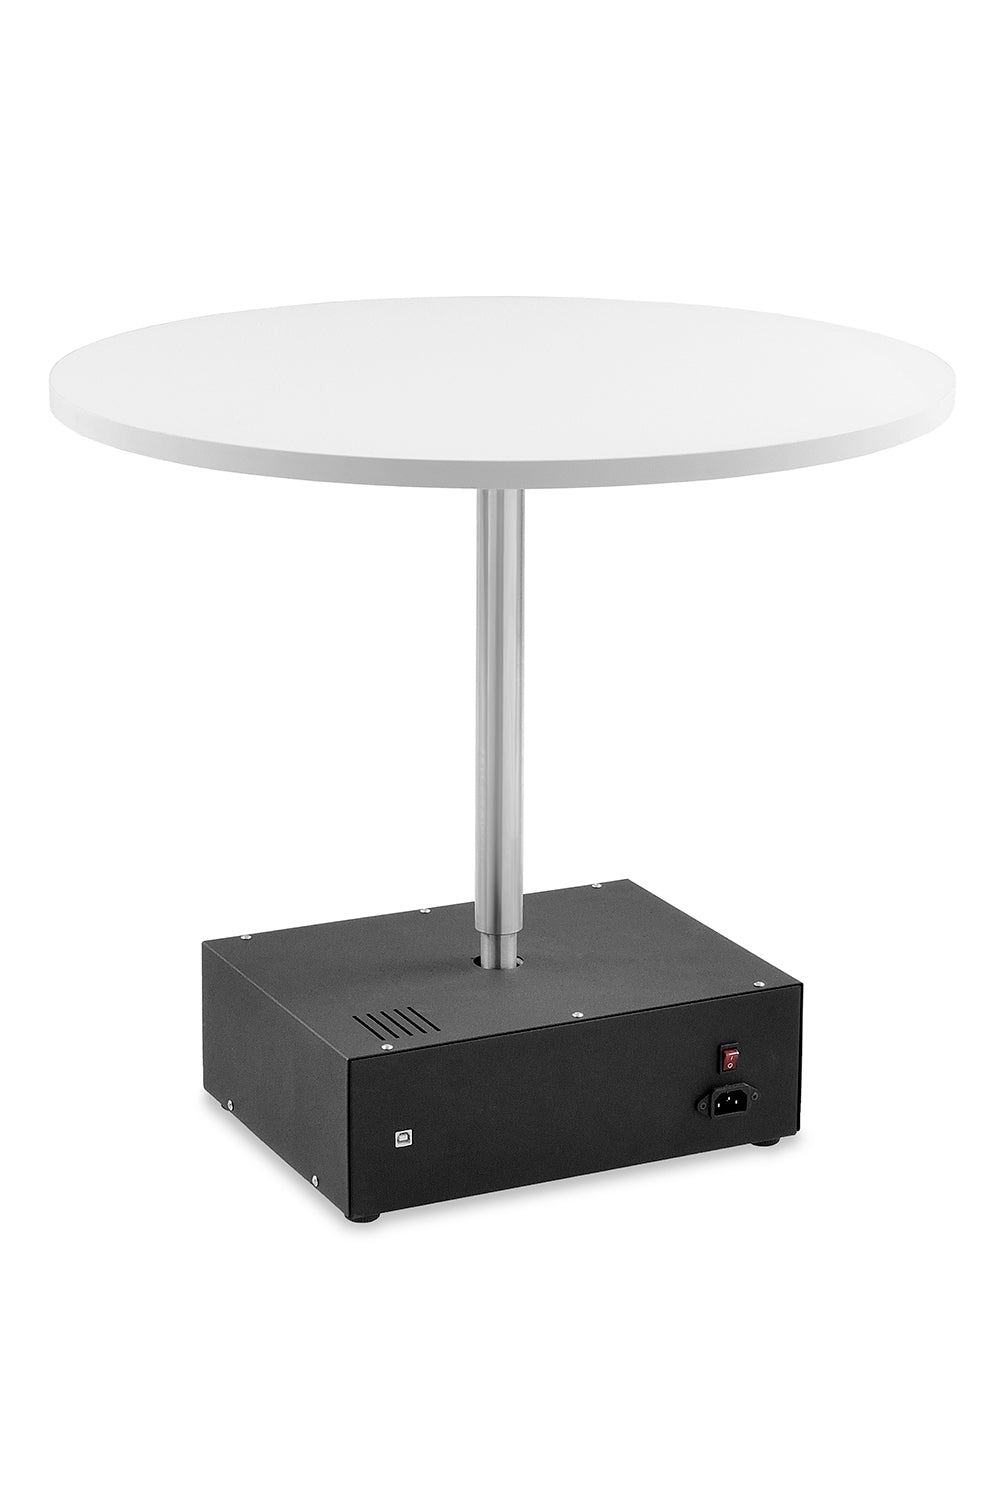 Photomechanics stand column for shooting small products